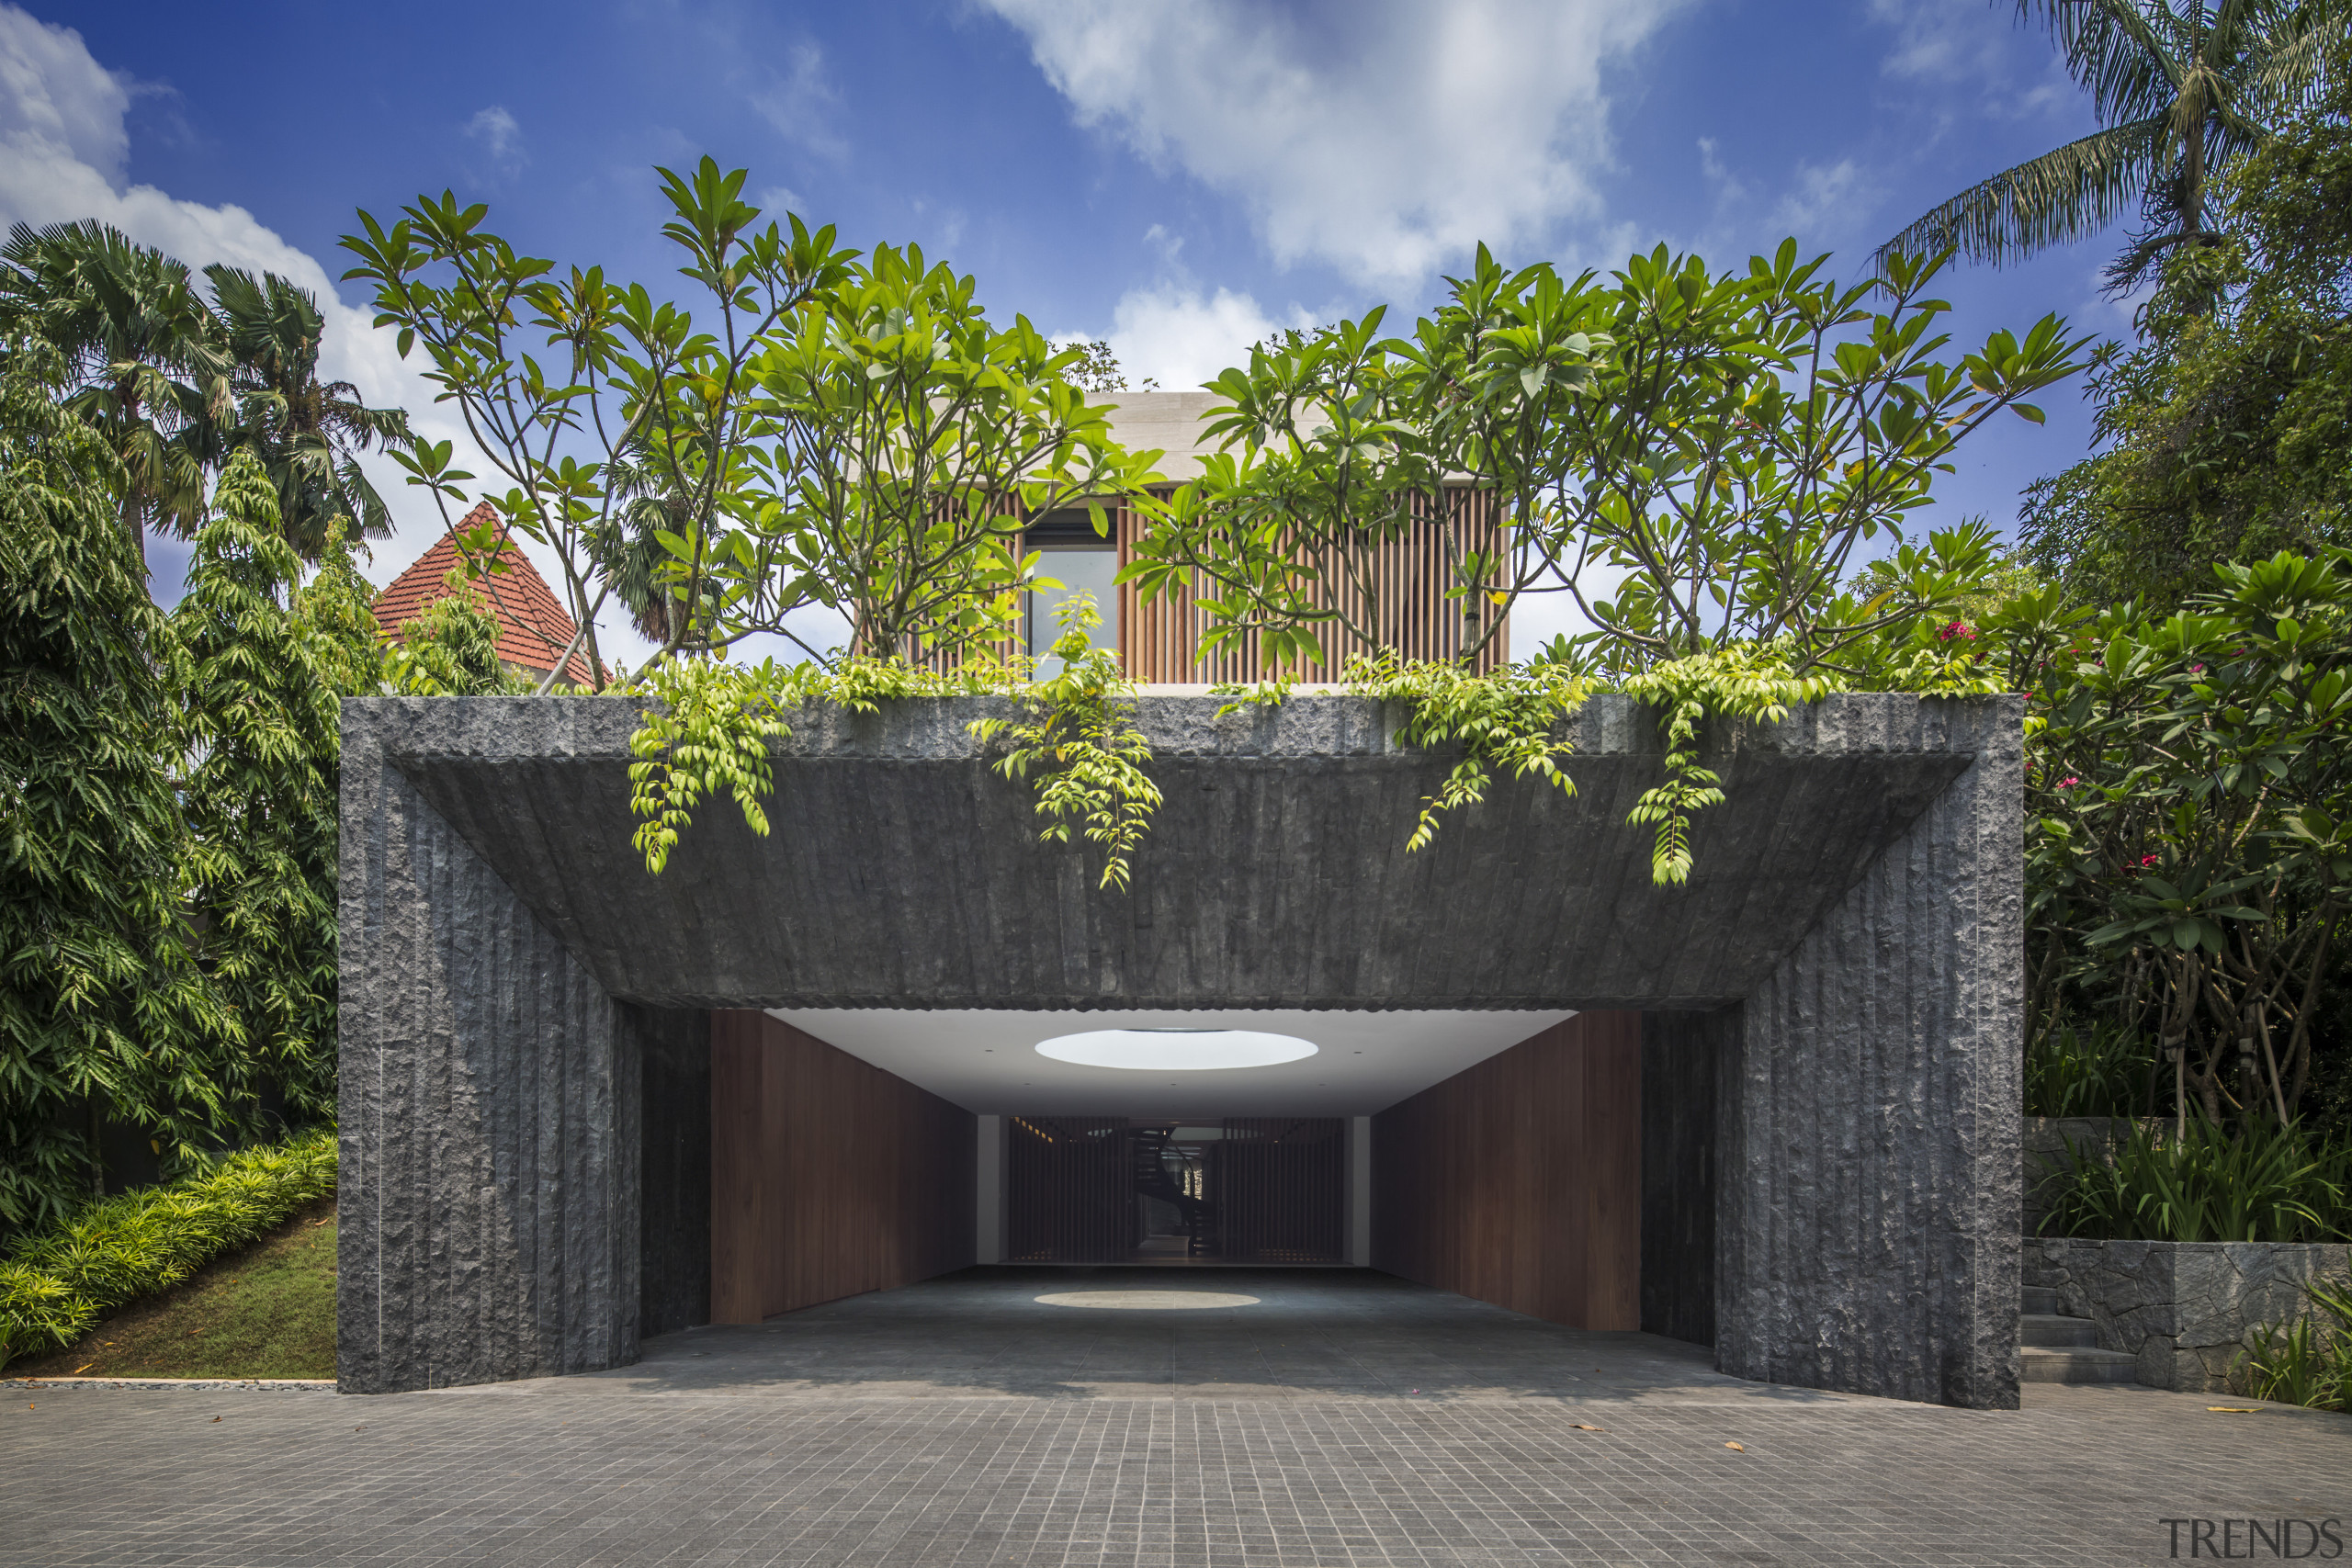 Guests arriving at this new home drive into architecture, building, estate, facade, home, house, property, real estate, residential area, tree, black